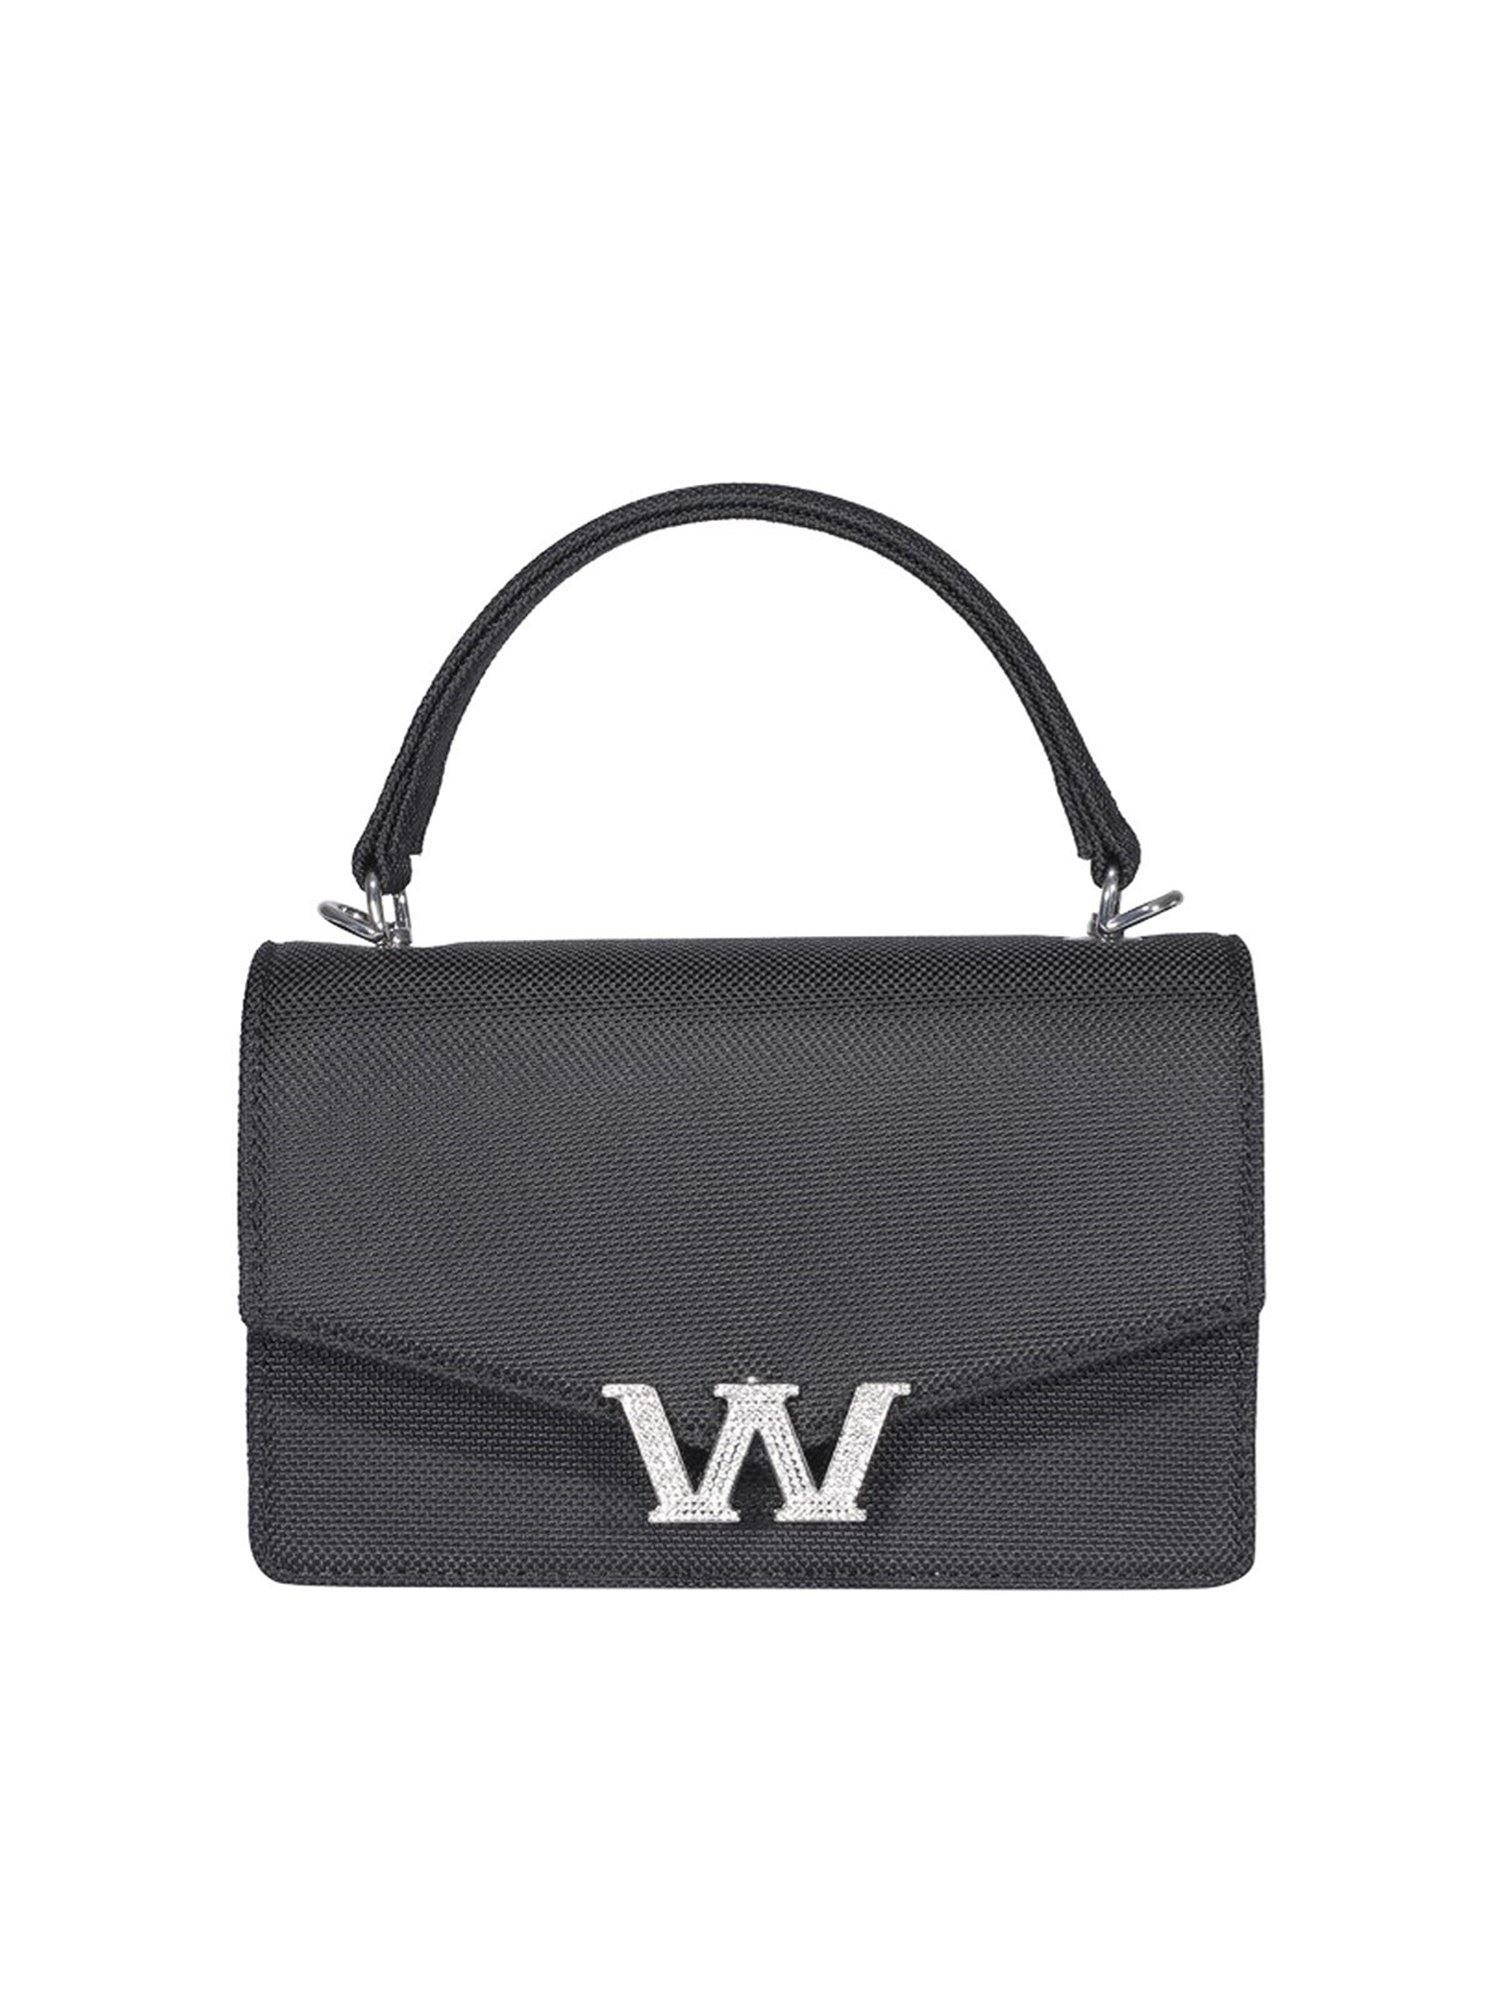 Alexander Wang ALEXANDER WANG W LEGACY MINI SATCHEL IN BLACK